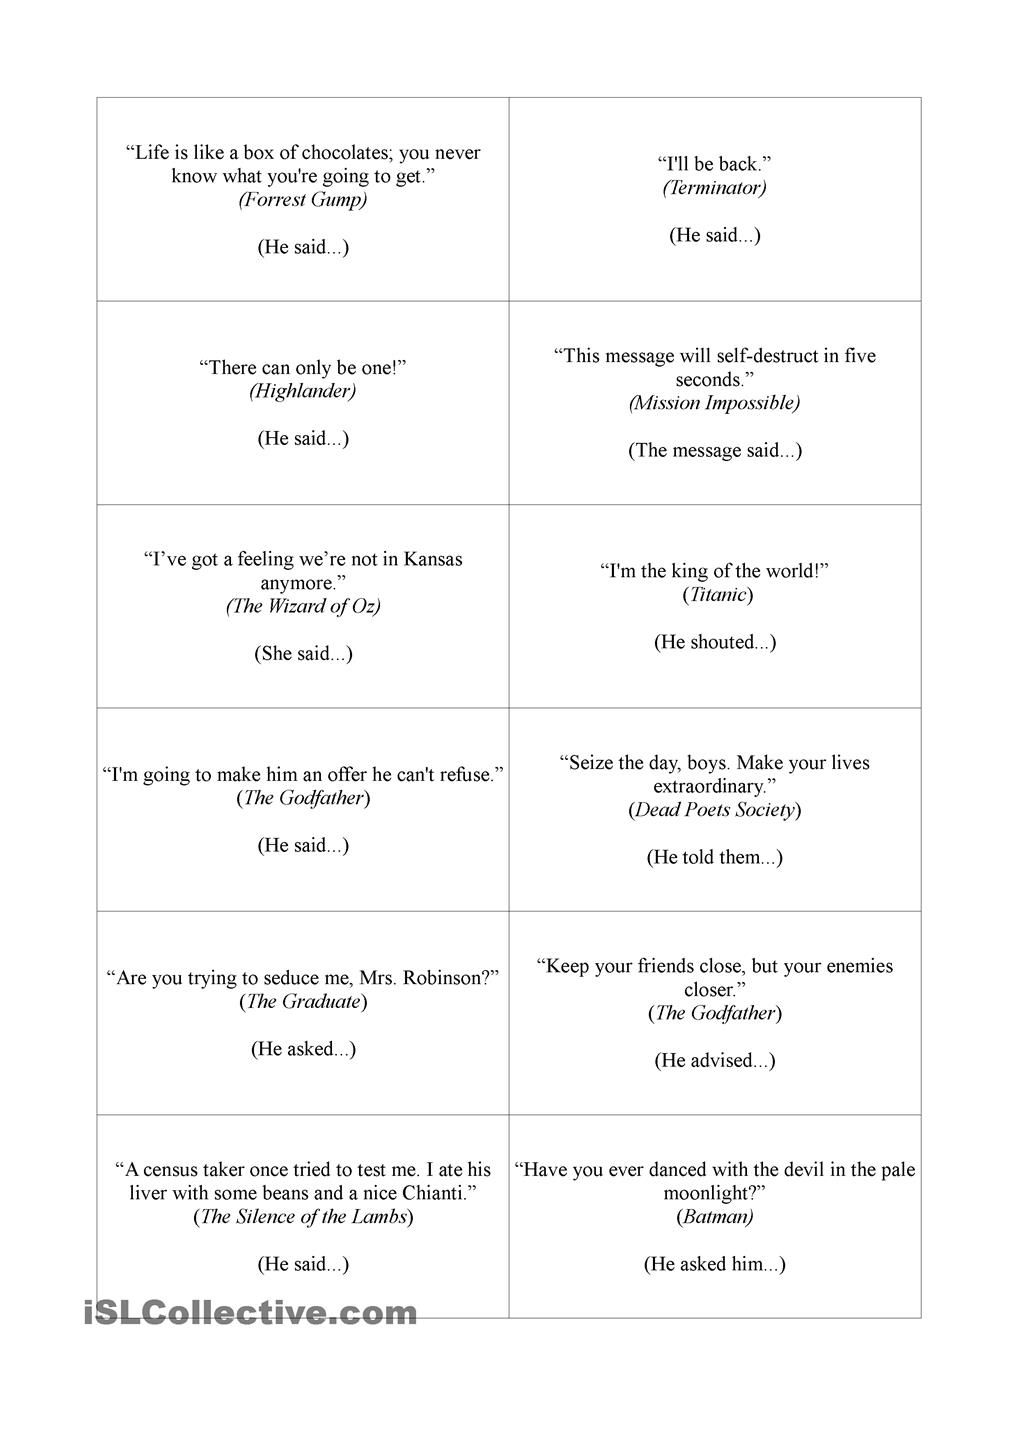 Workbooks speech worksheets : Movie quotes - reported speech | Games & Speaking Activities ...